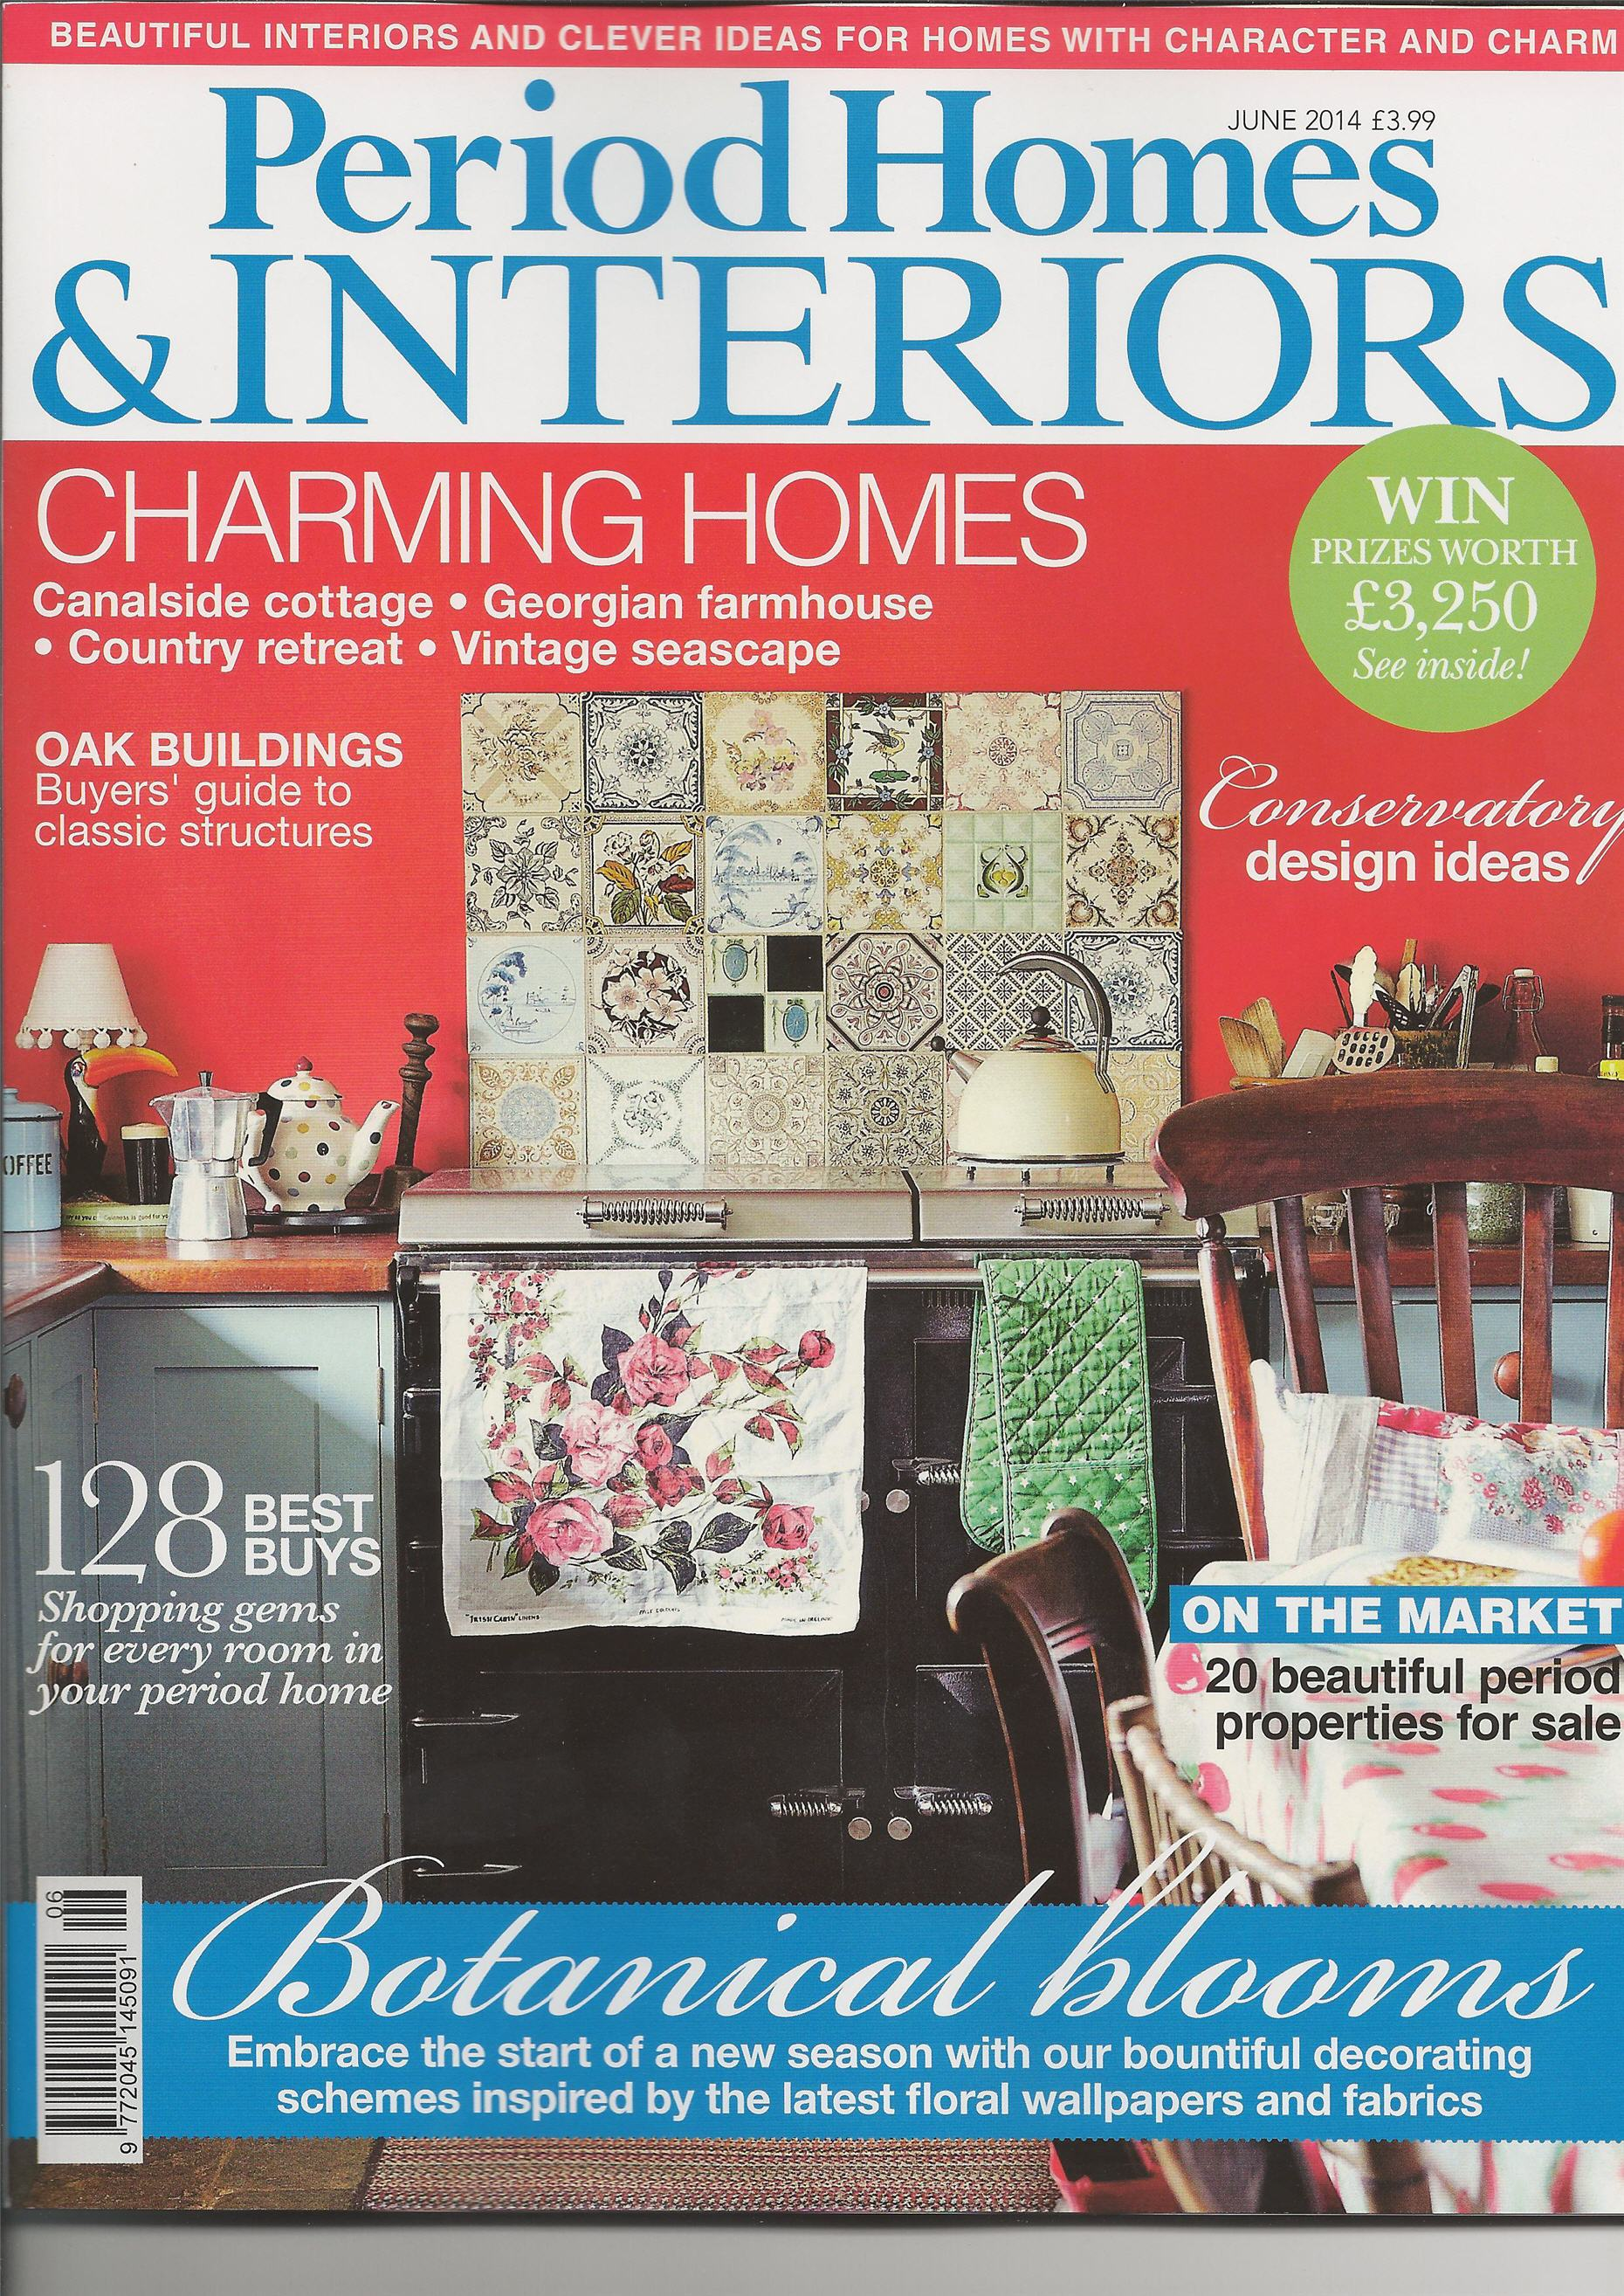 Period Homes & Interiors Magazine Recommends Hunter 1886 Ceiling Fan